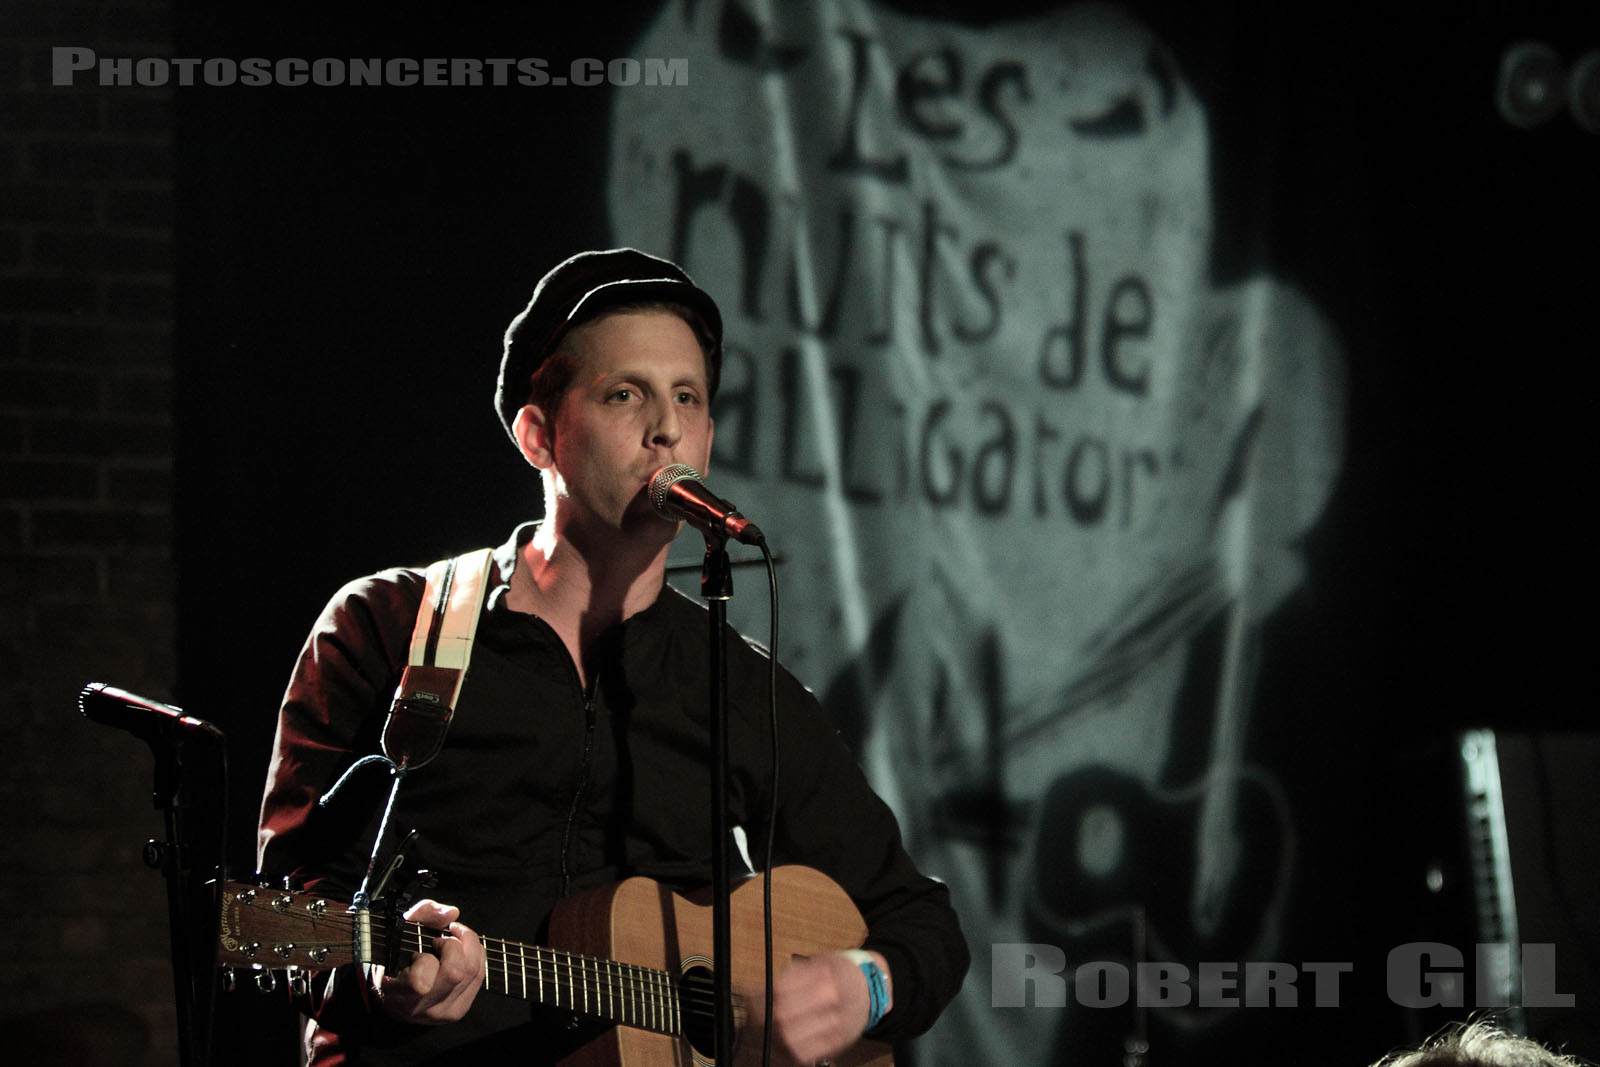 JAMES LEVY - 2010-02-27 - PARIS - La Maroquinerie